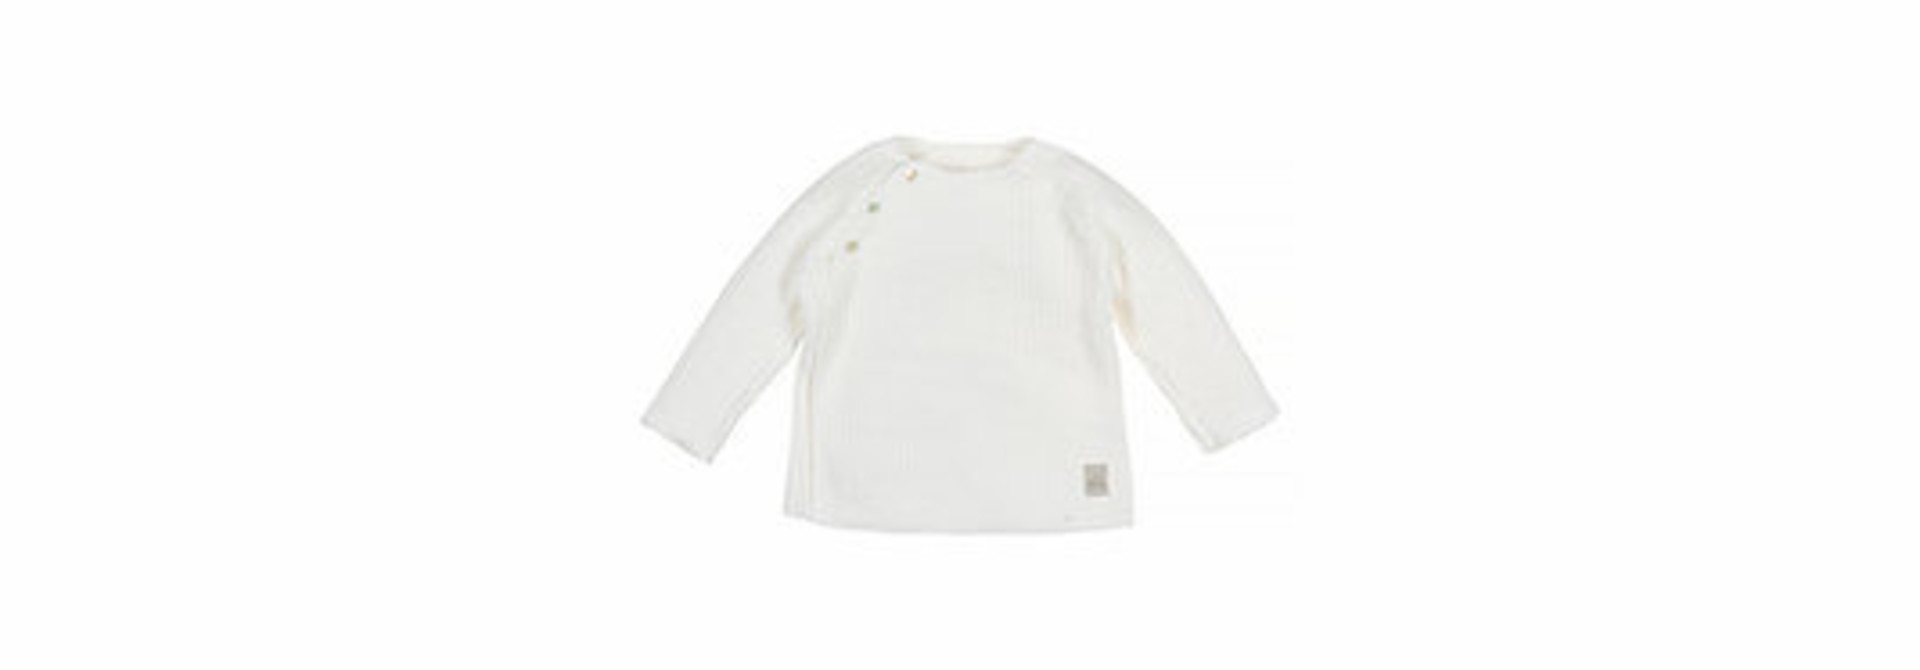 Baby knitted rib top - off-white